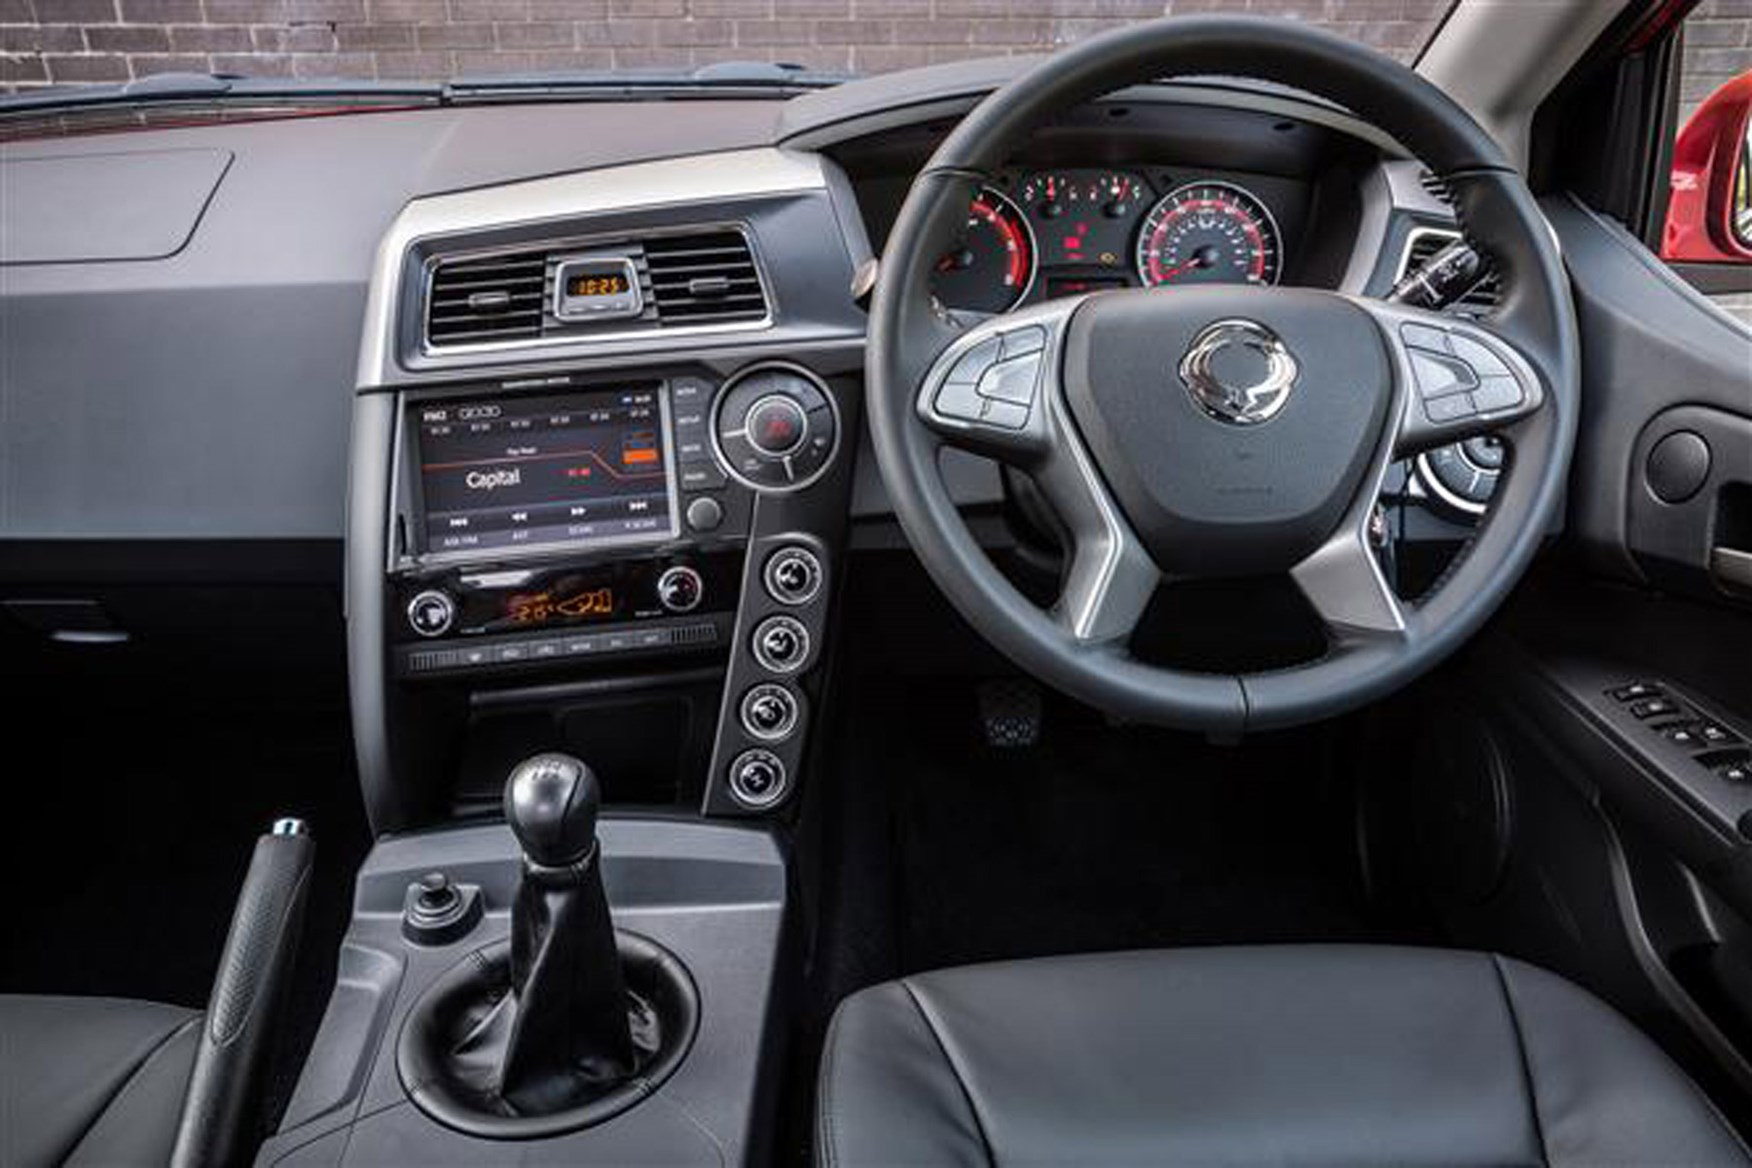 SsangYong Musso full review on Parkers Vans - in the driver's seat